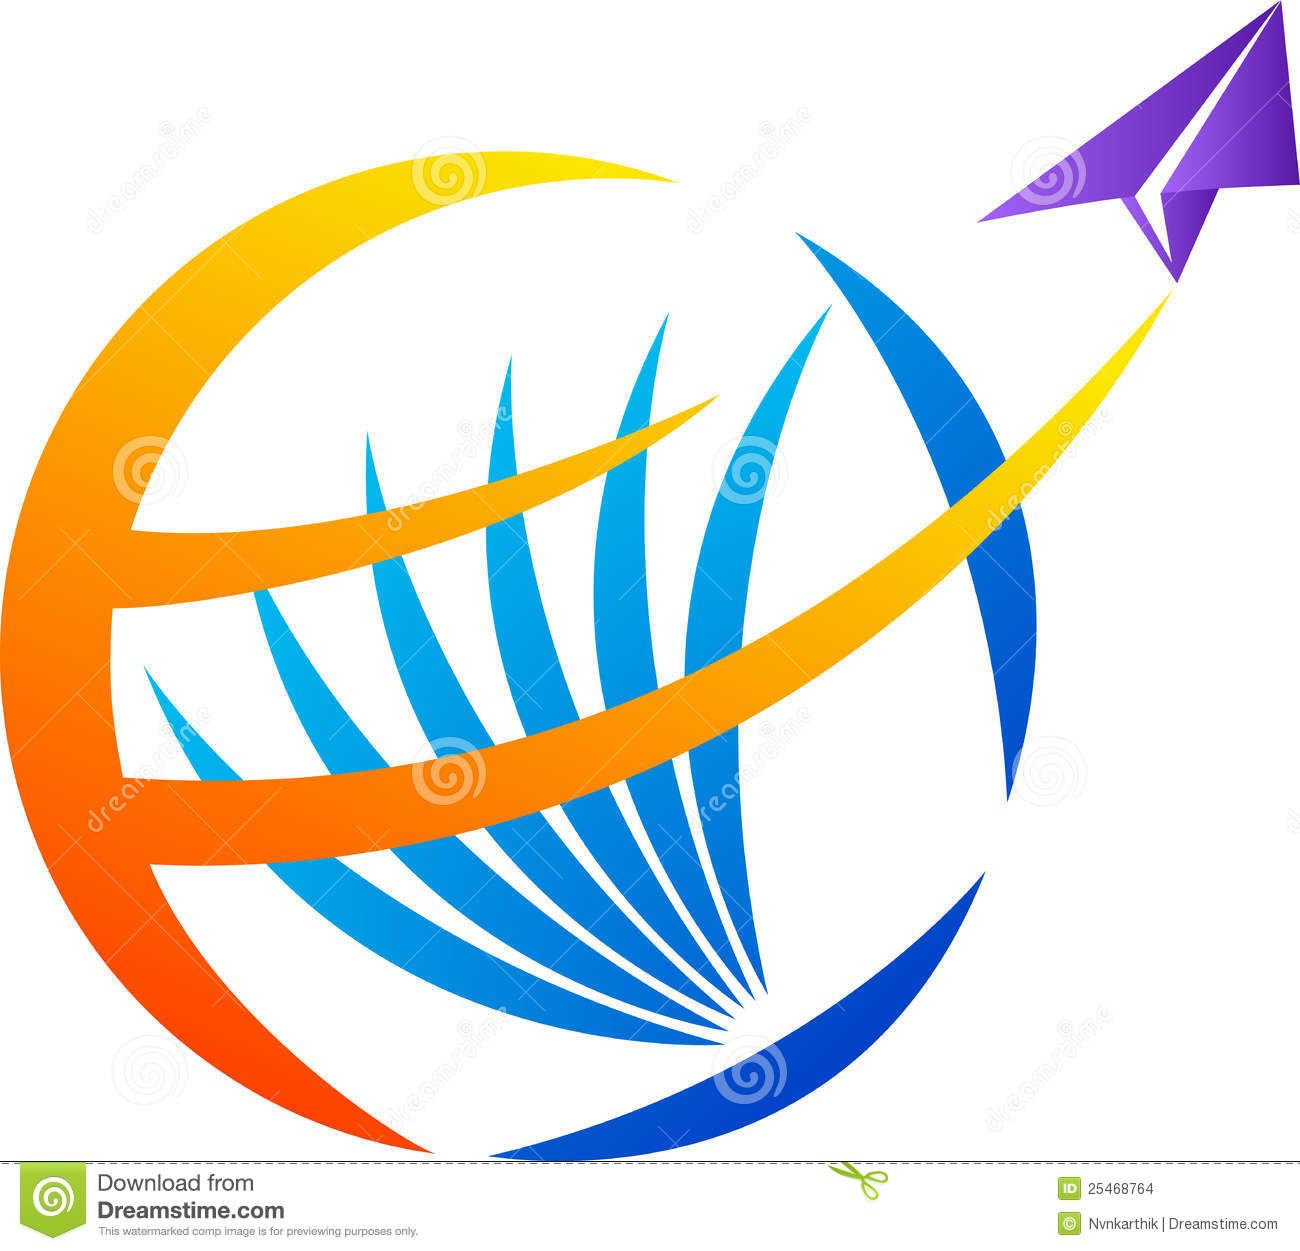 World travel logo stock vector. Image of delivery, globe ...